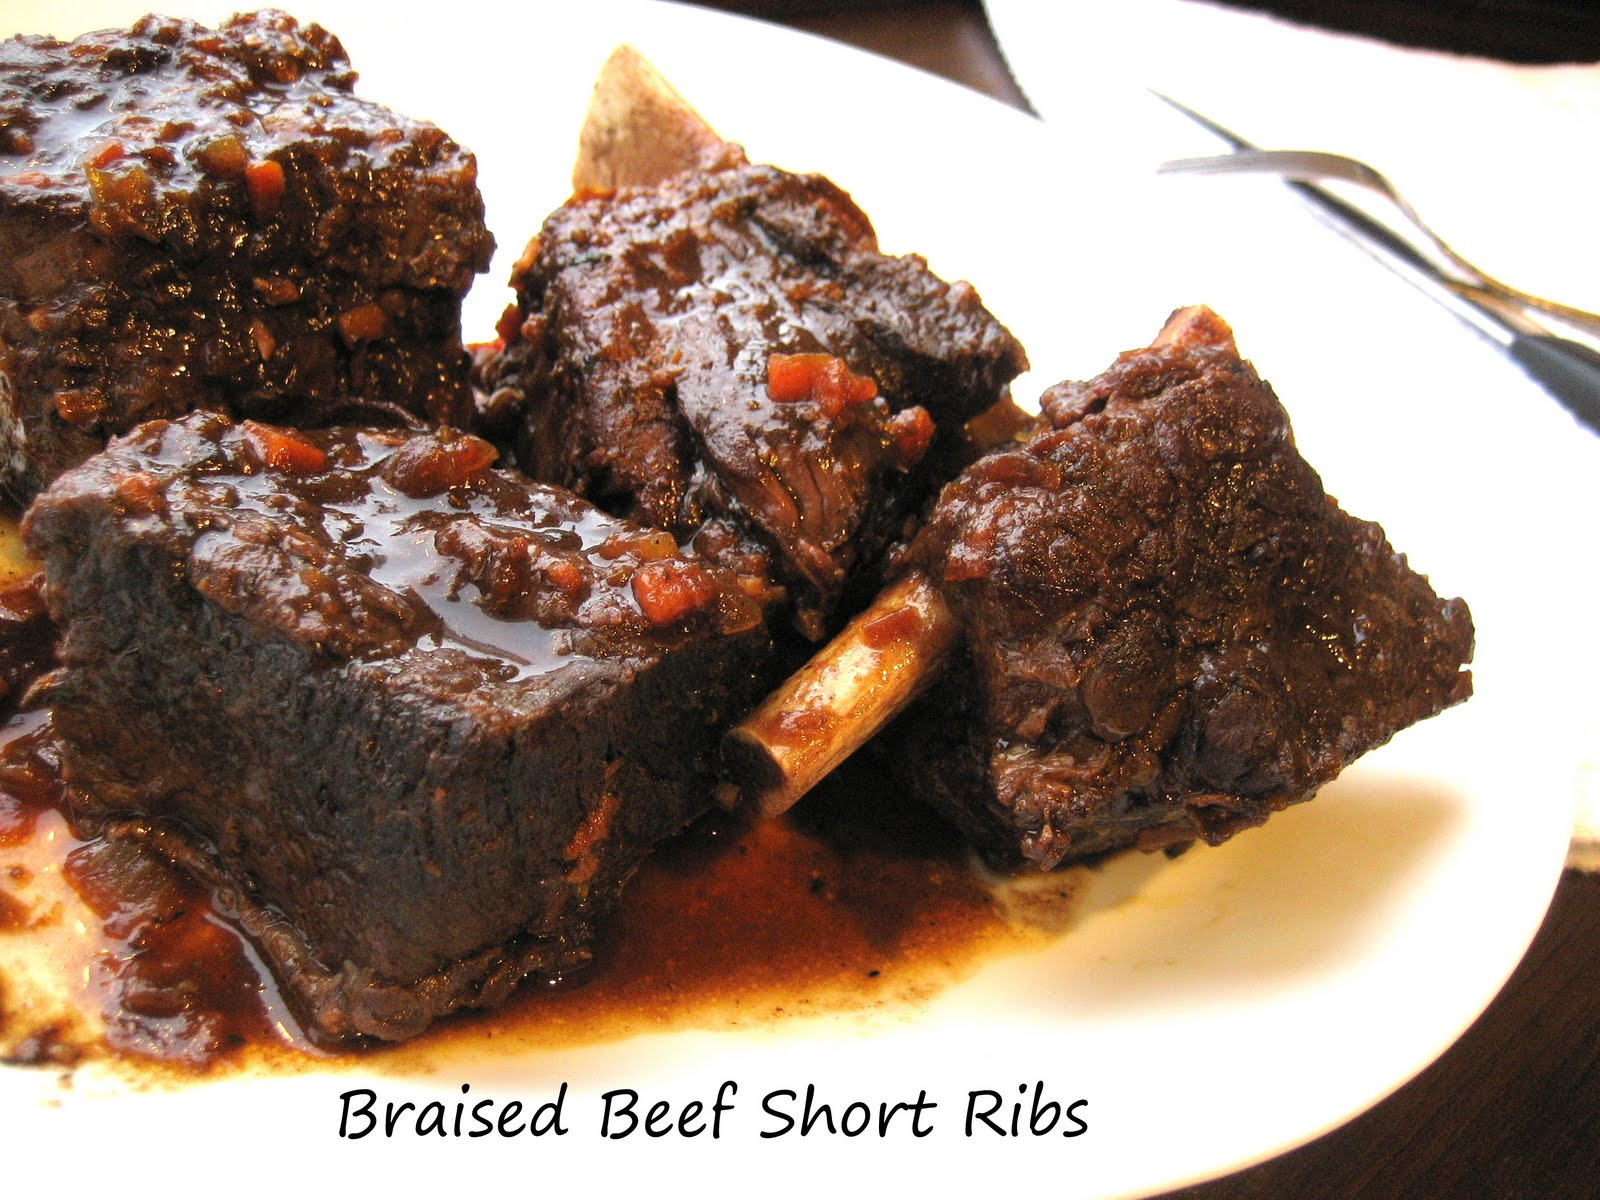 braised beef short ribs i love braised meats probably because the meat ...